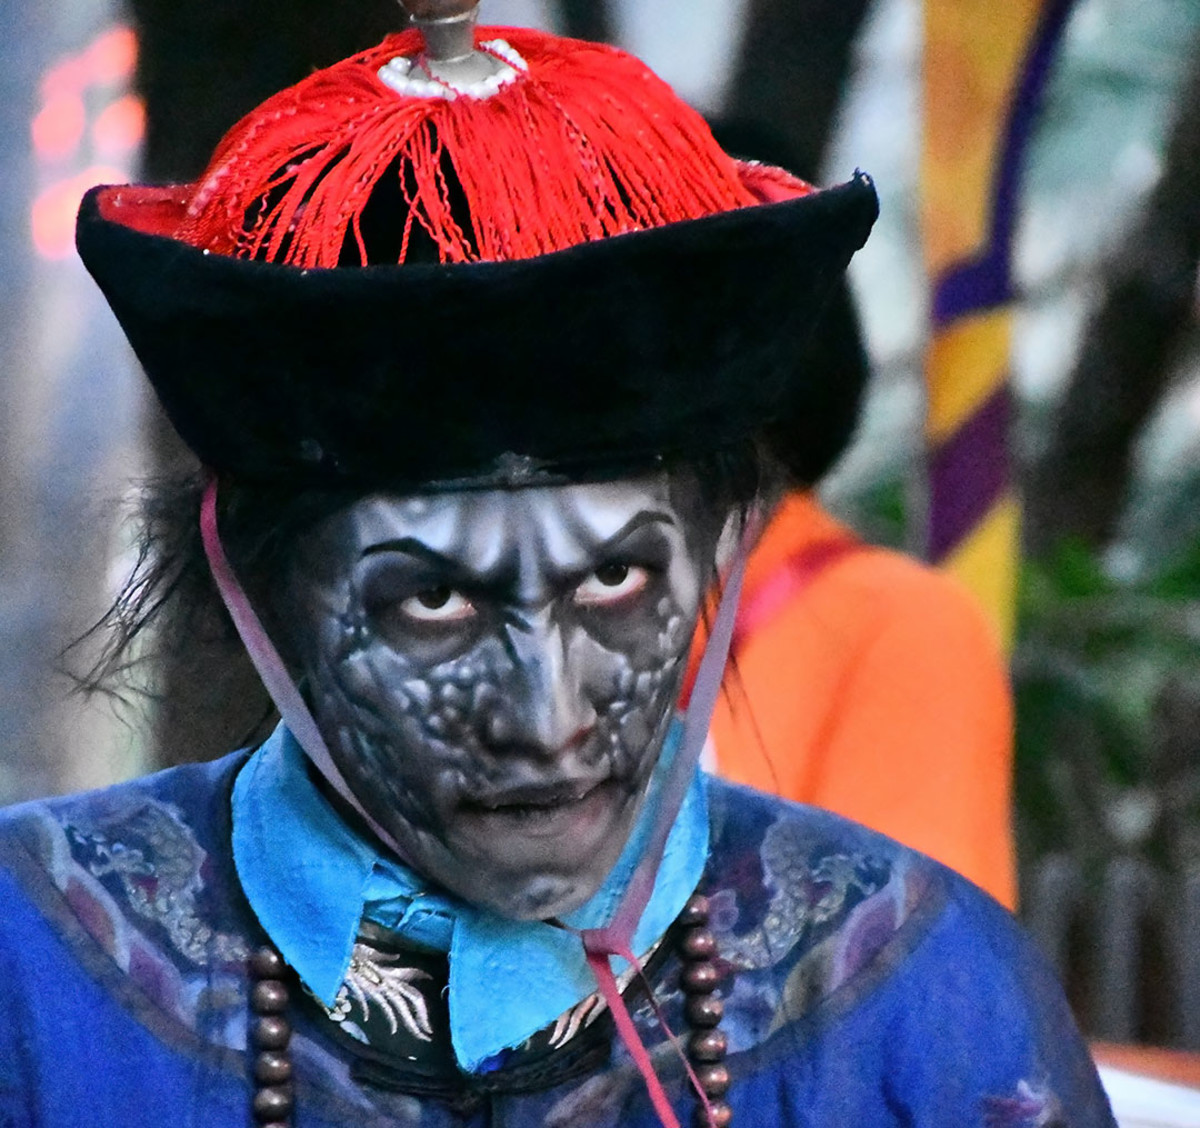 The Jiangshi is probably the most famous Chinese mythical monster in pop culture.